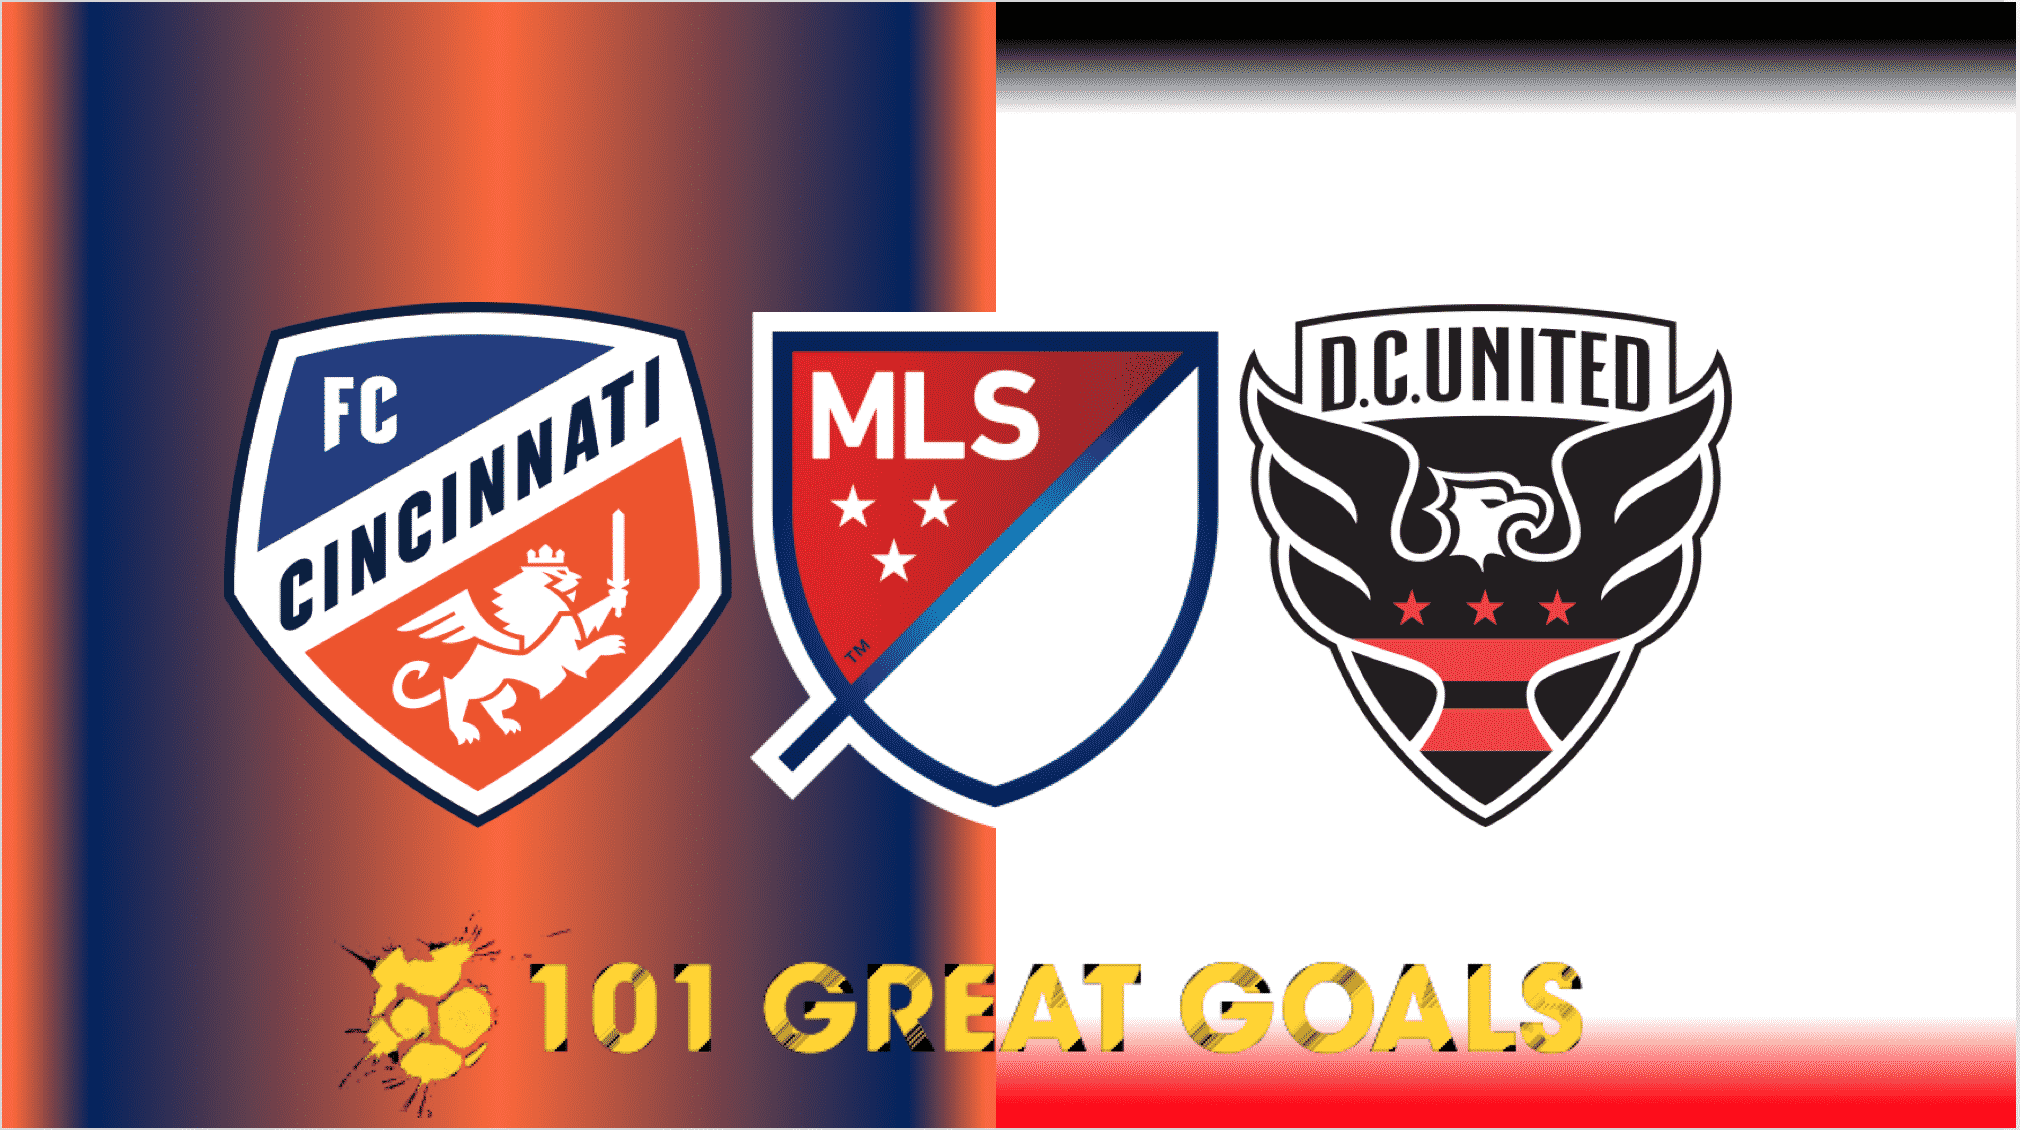 FC Cincinnati vs DC United live streaming